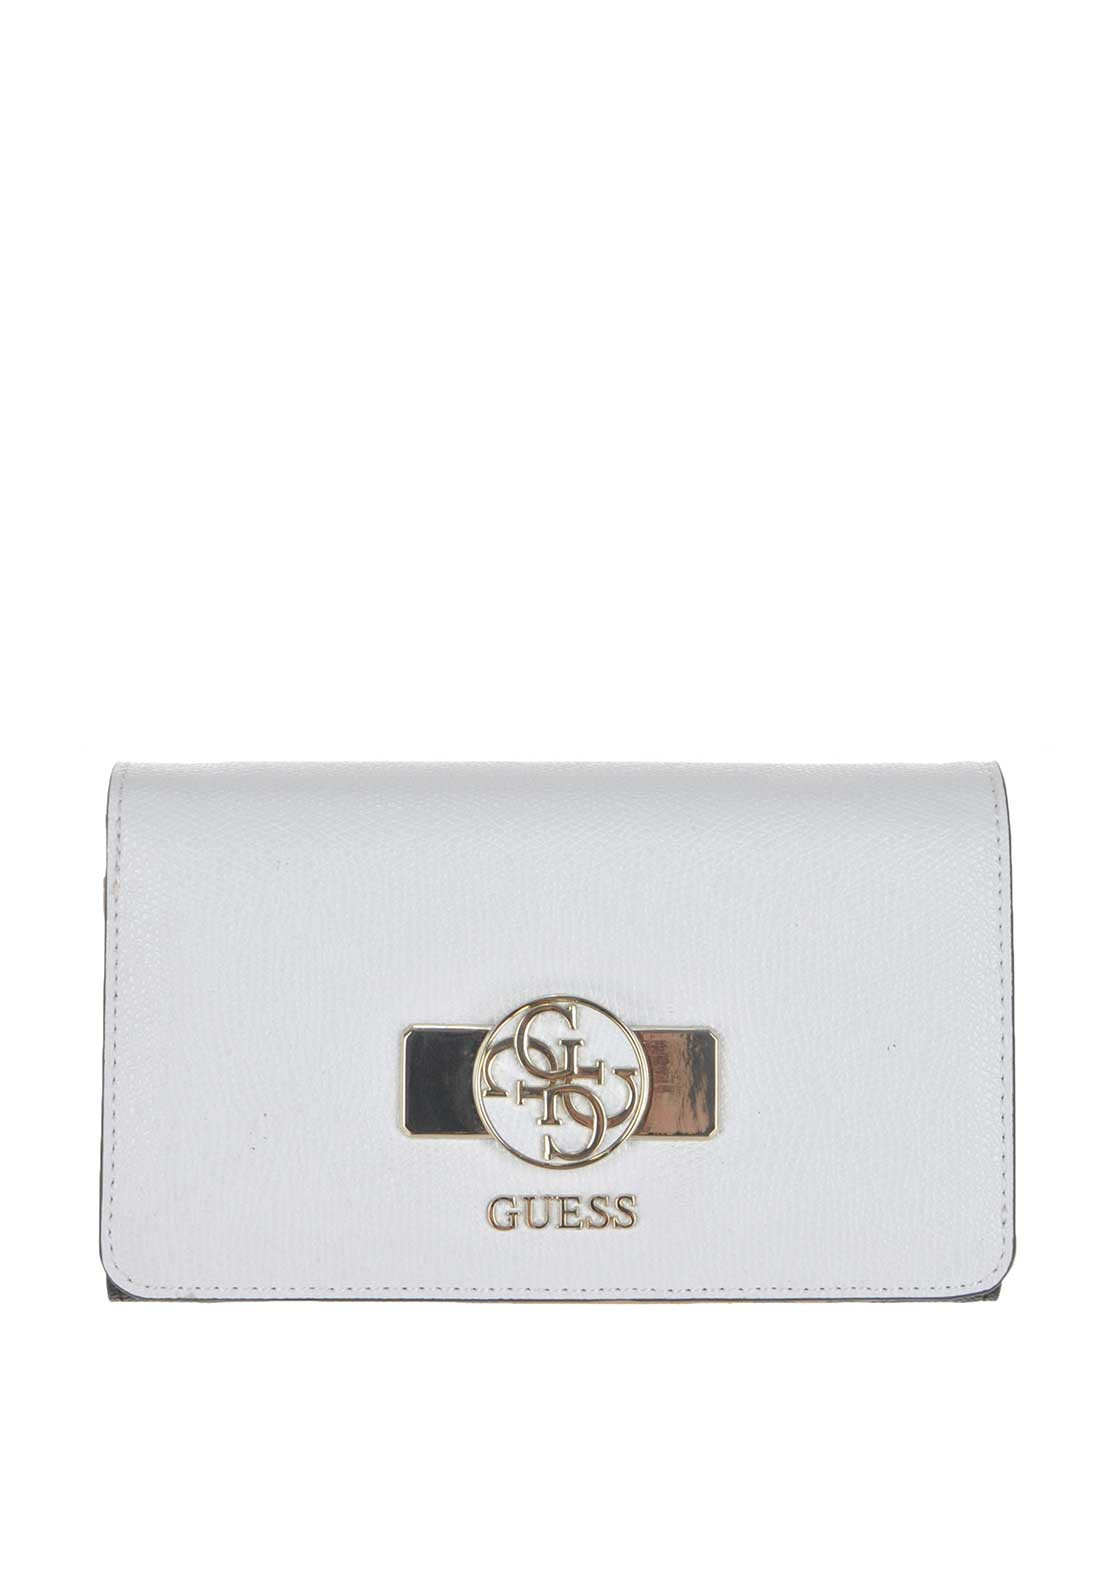 Guess Cynthia Flap Wallet, White